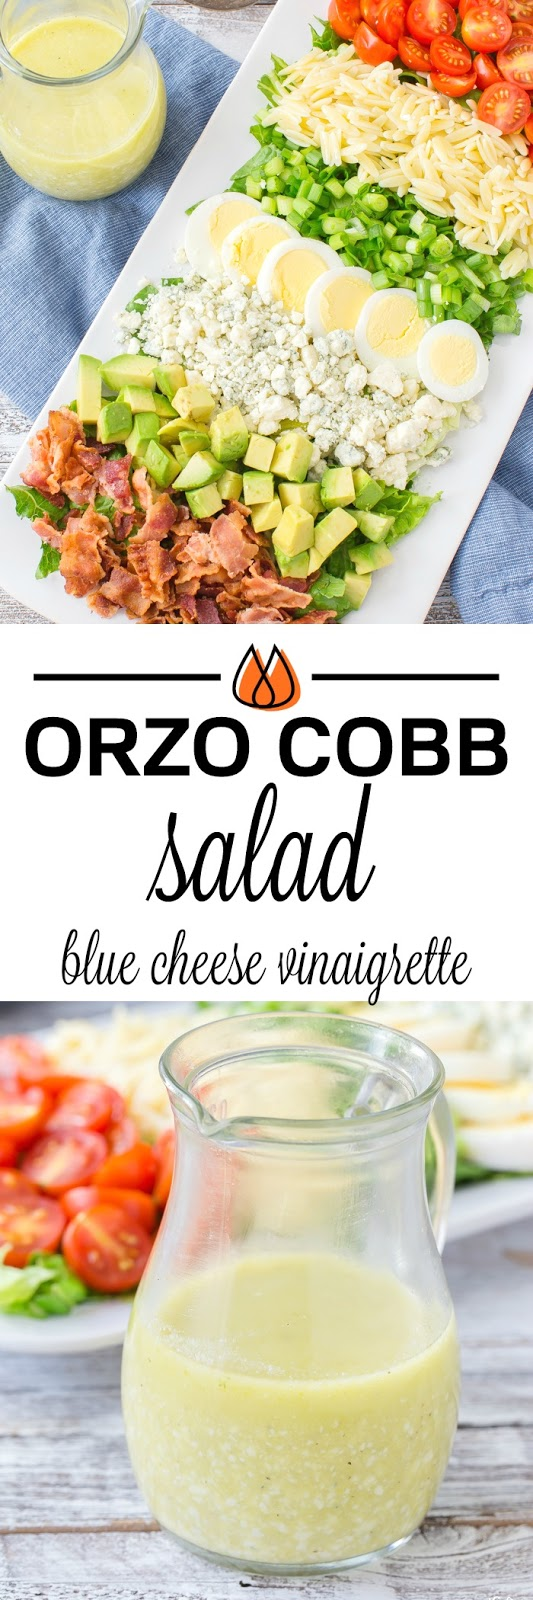 Easy and tasty Orzo Cobb Salad